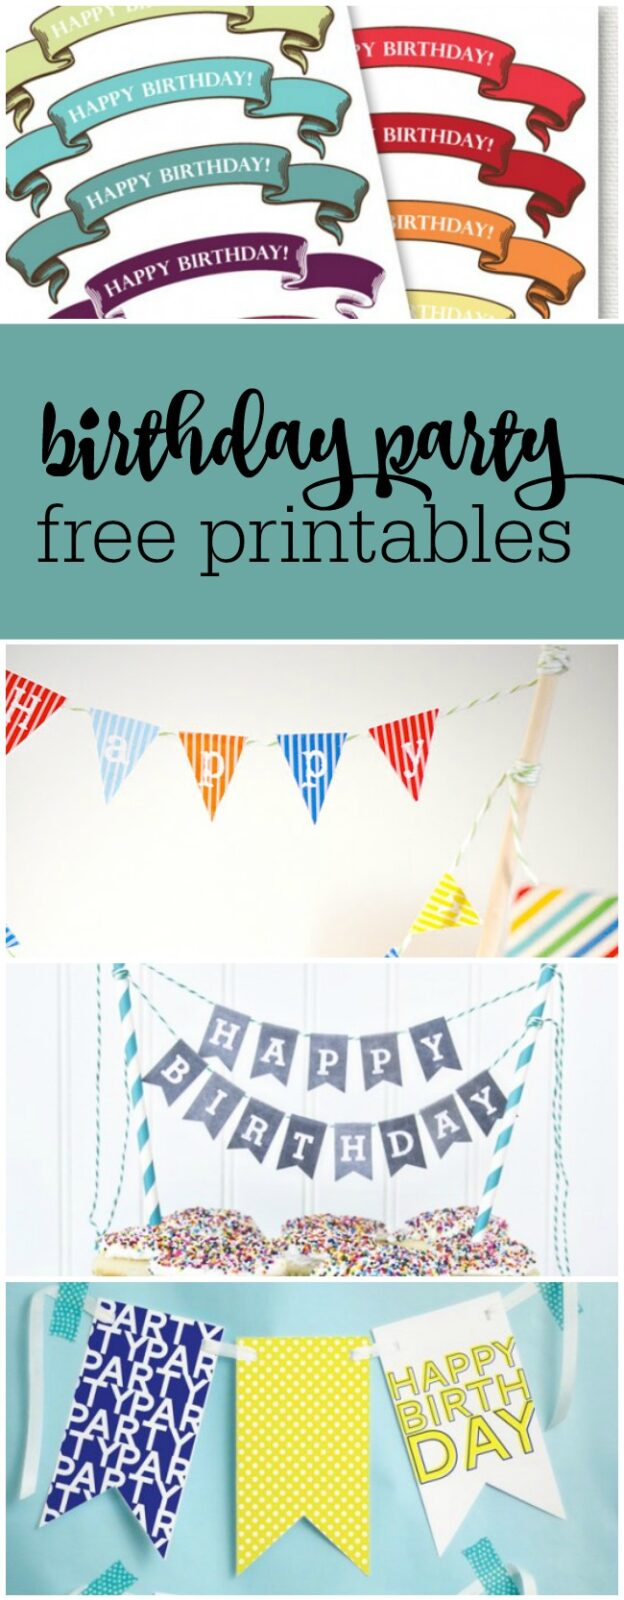 birthday party free printables curated by The Party Teacher